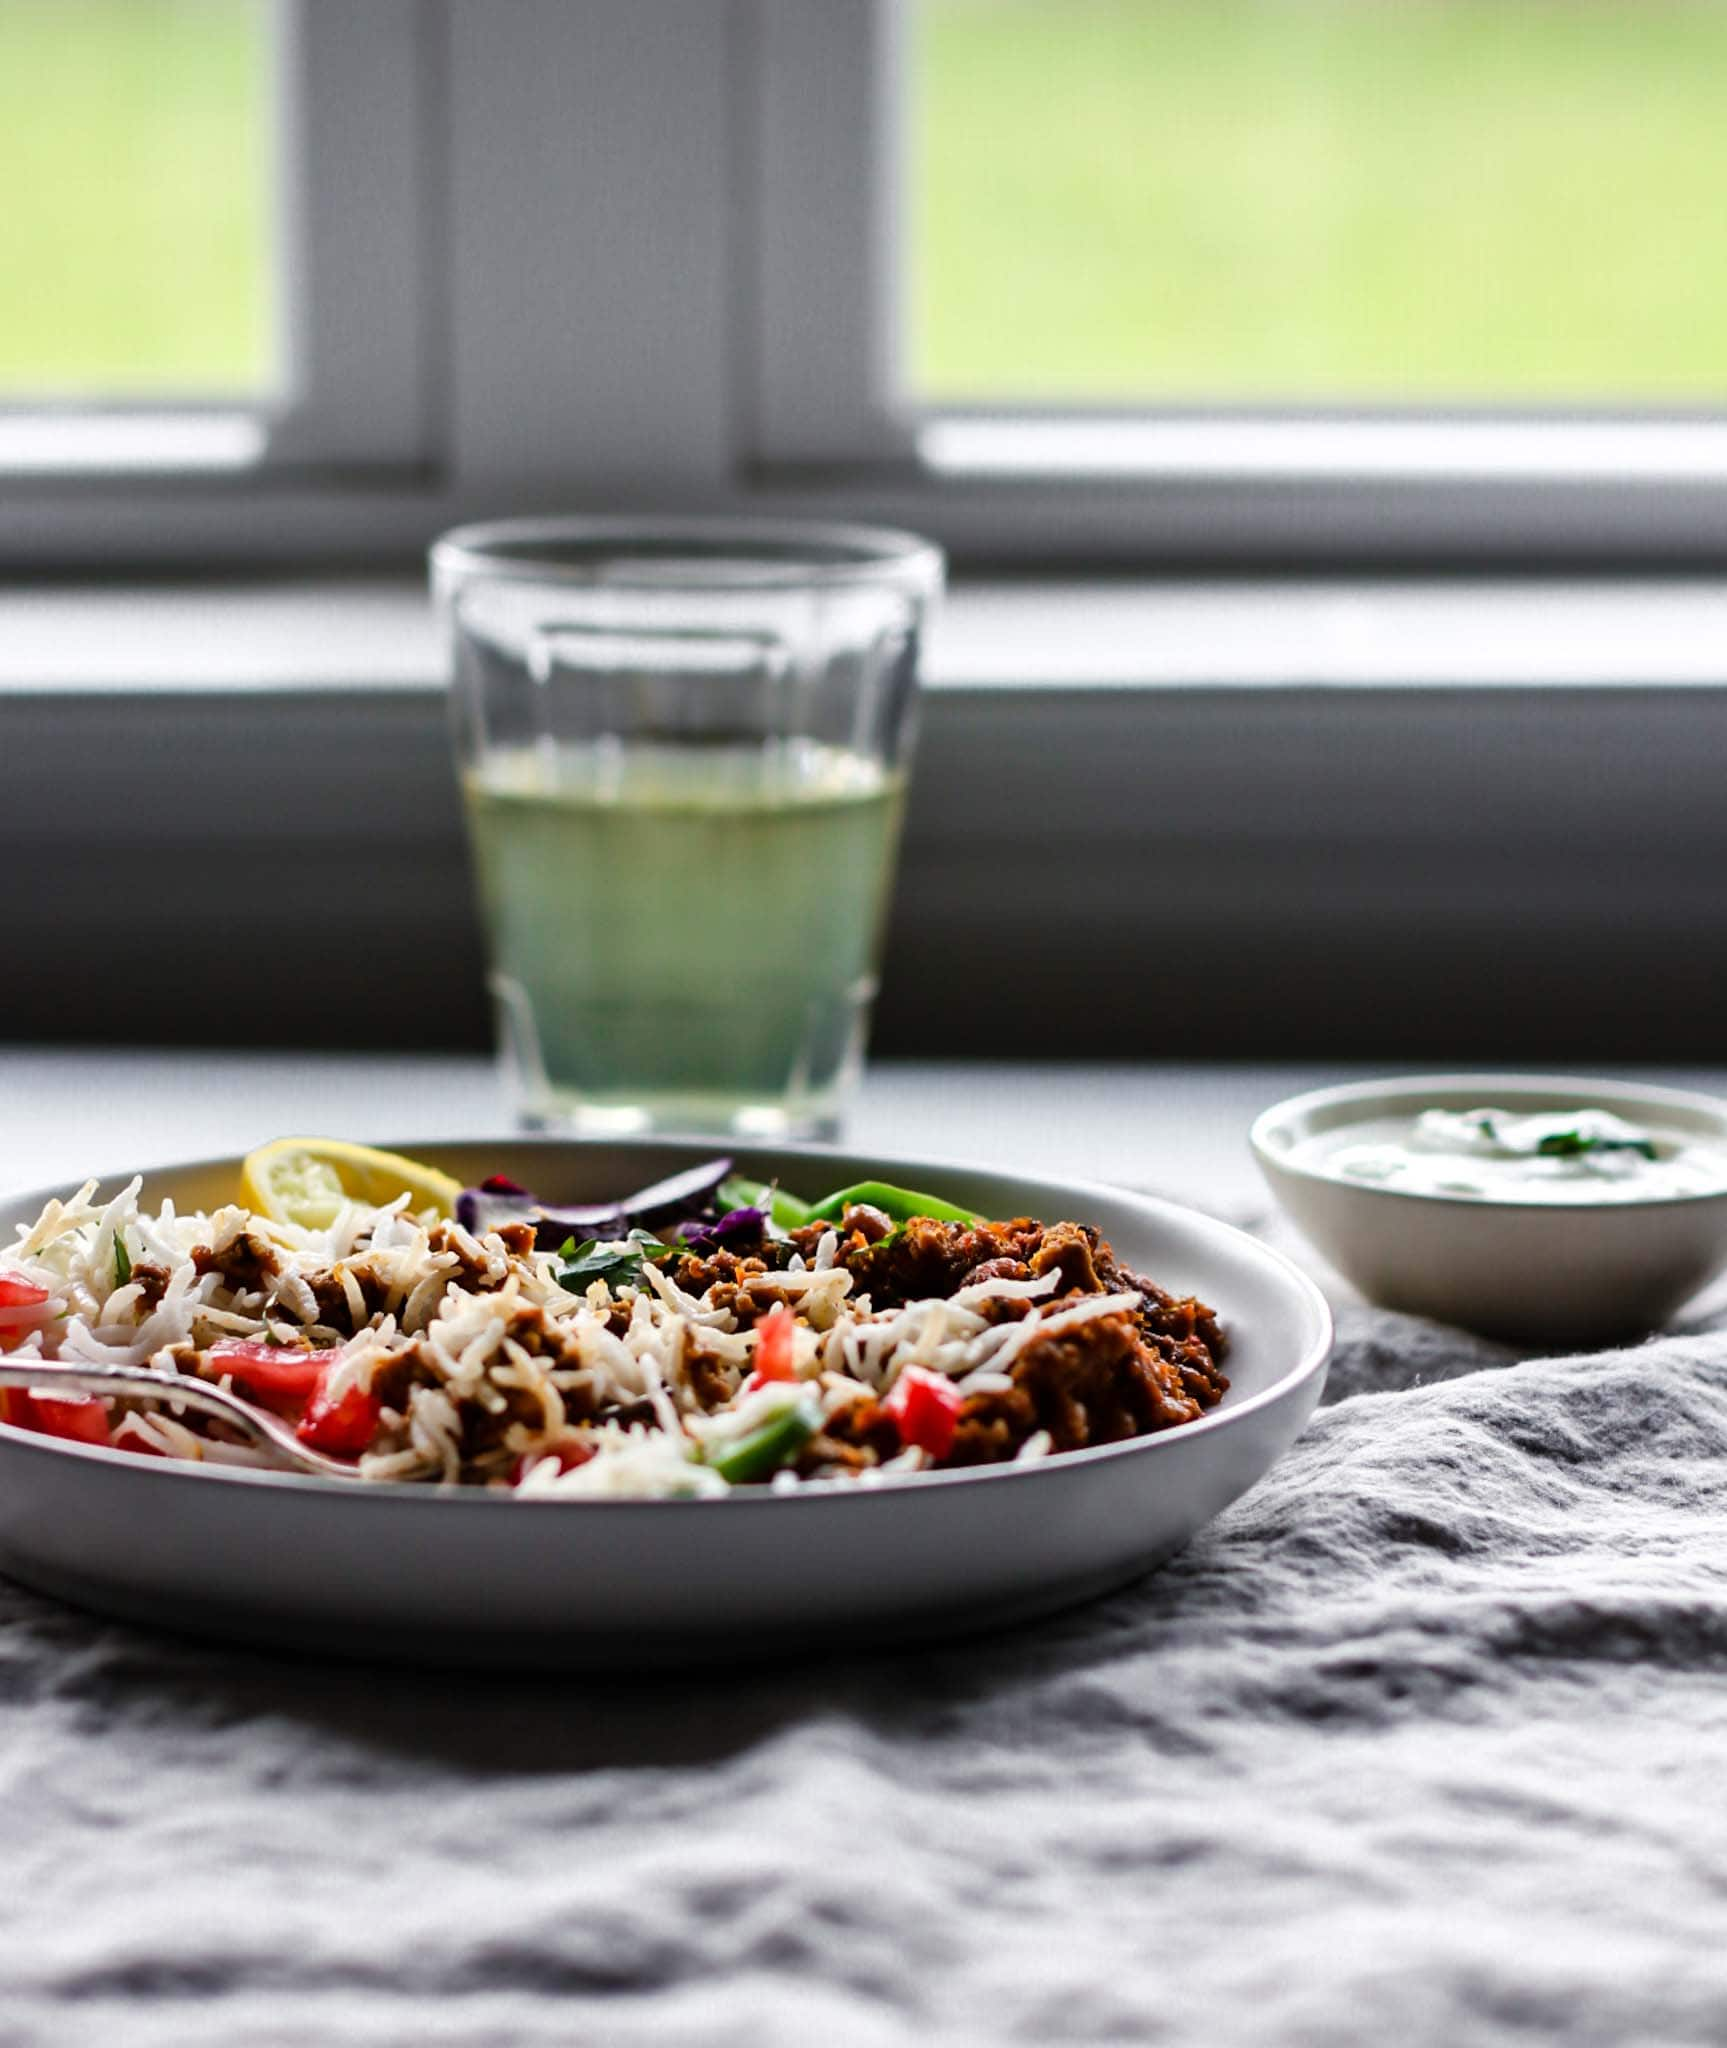 A plate of Keema Lobia with a silver fork with rice, vegetables placed in front of a window.